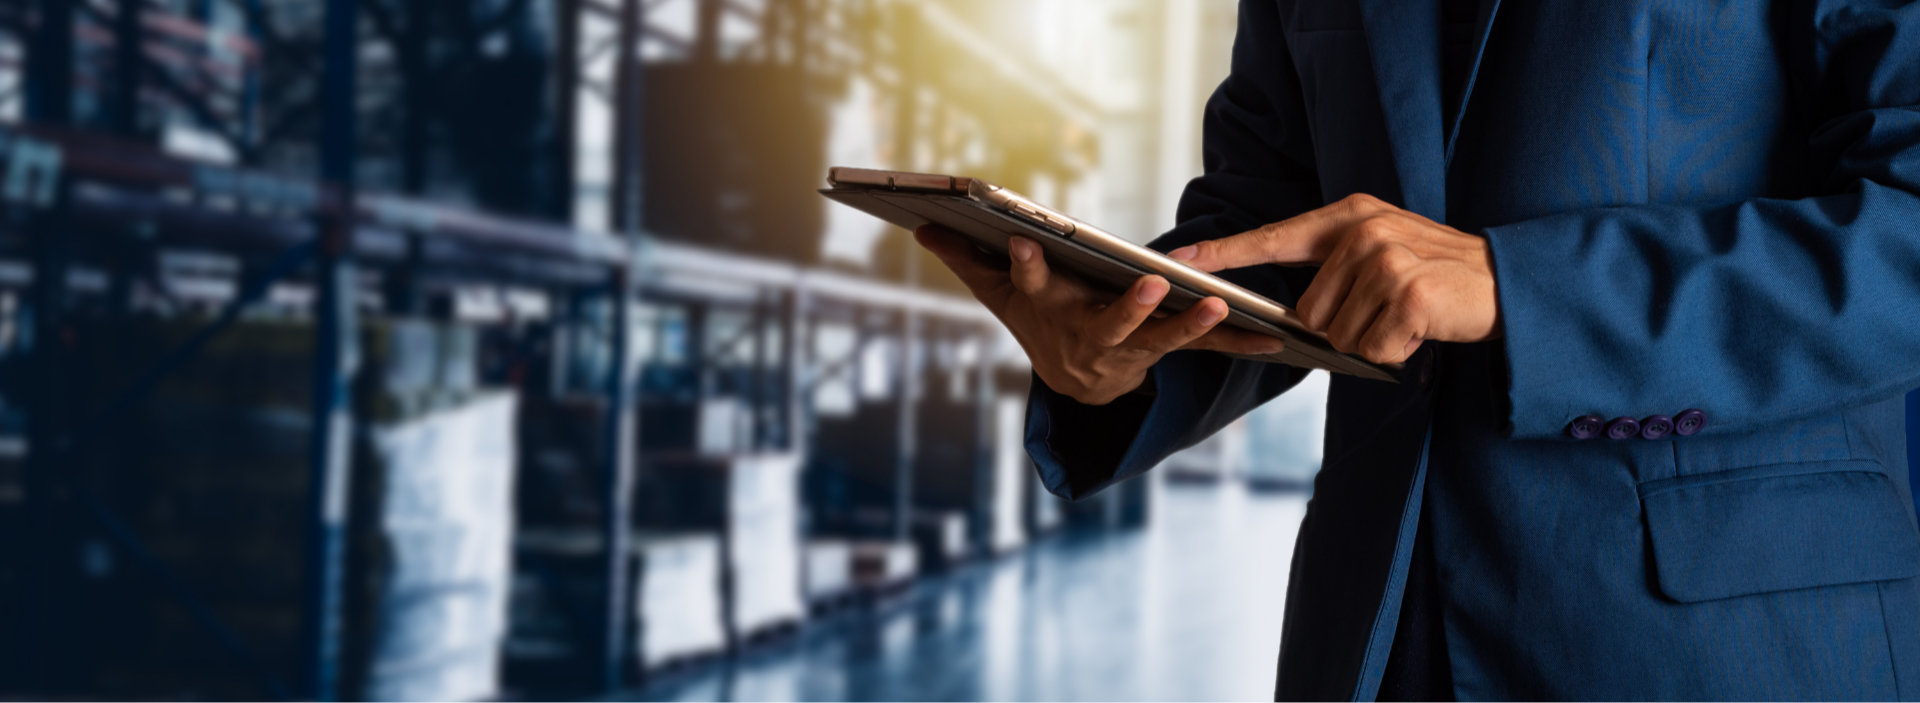 Inventory management automation: How you can benefit from it